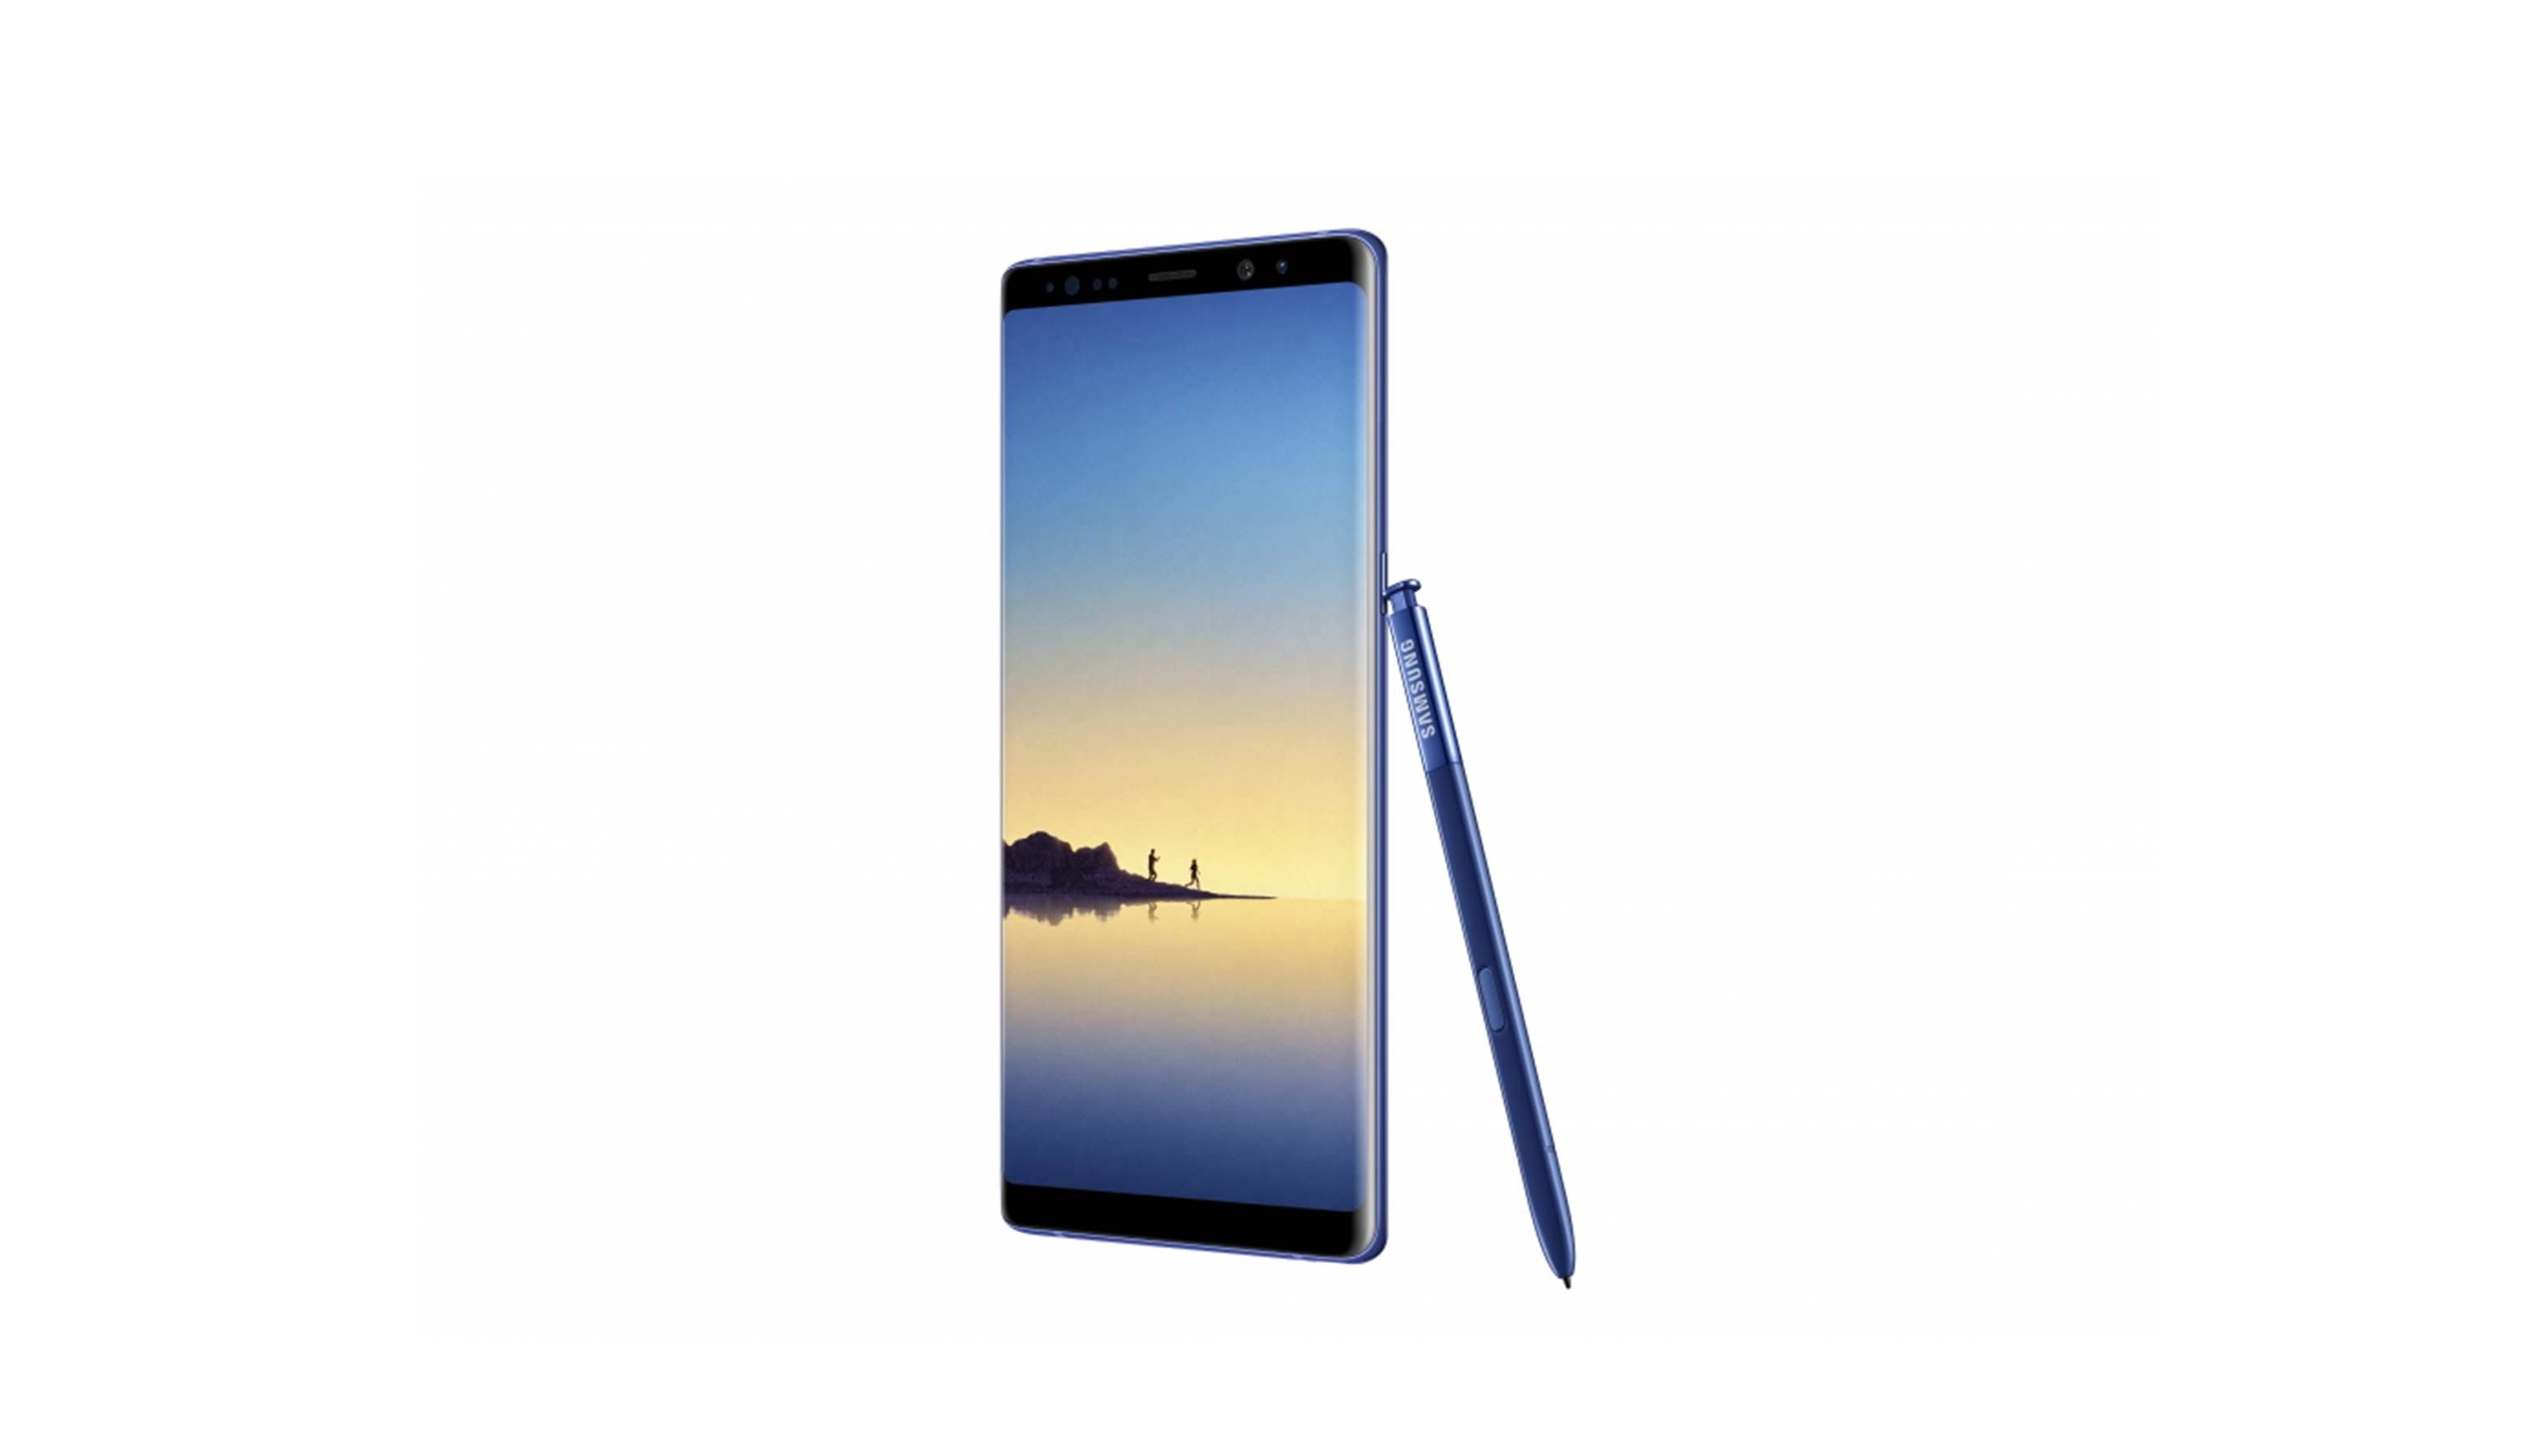 Samsung Galaxy Note8 - Deepsea Blue (1)